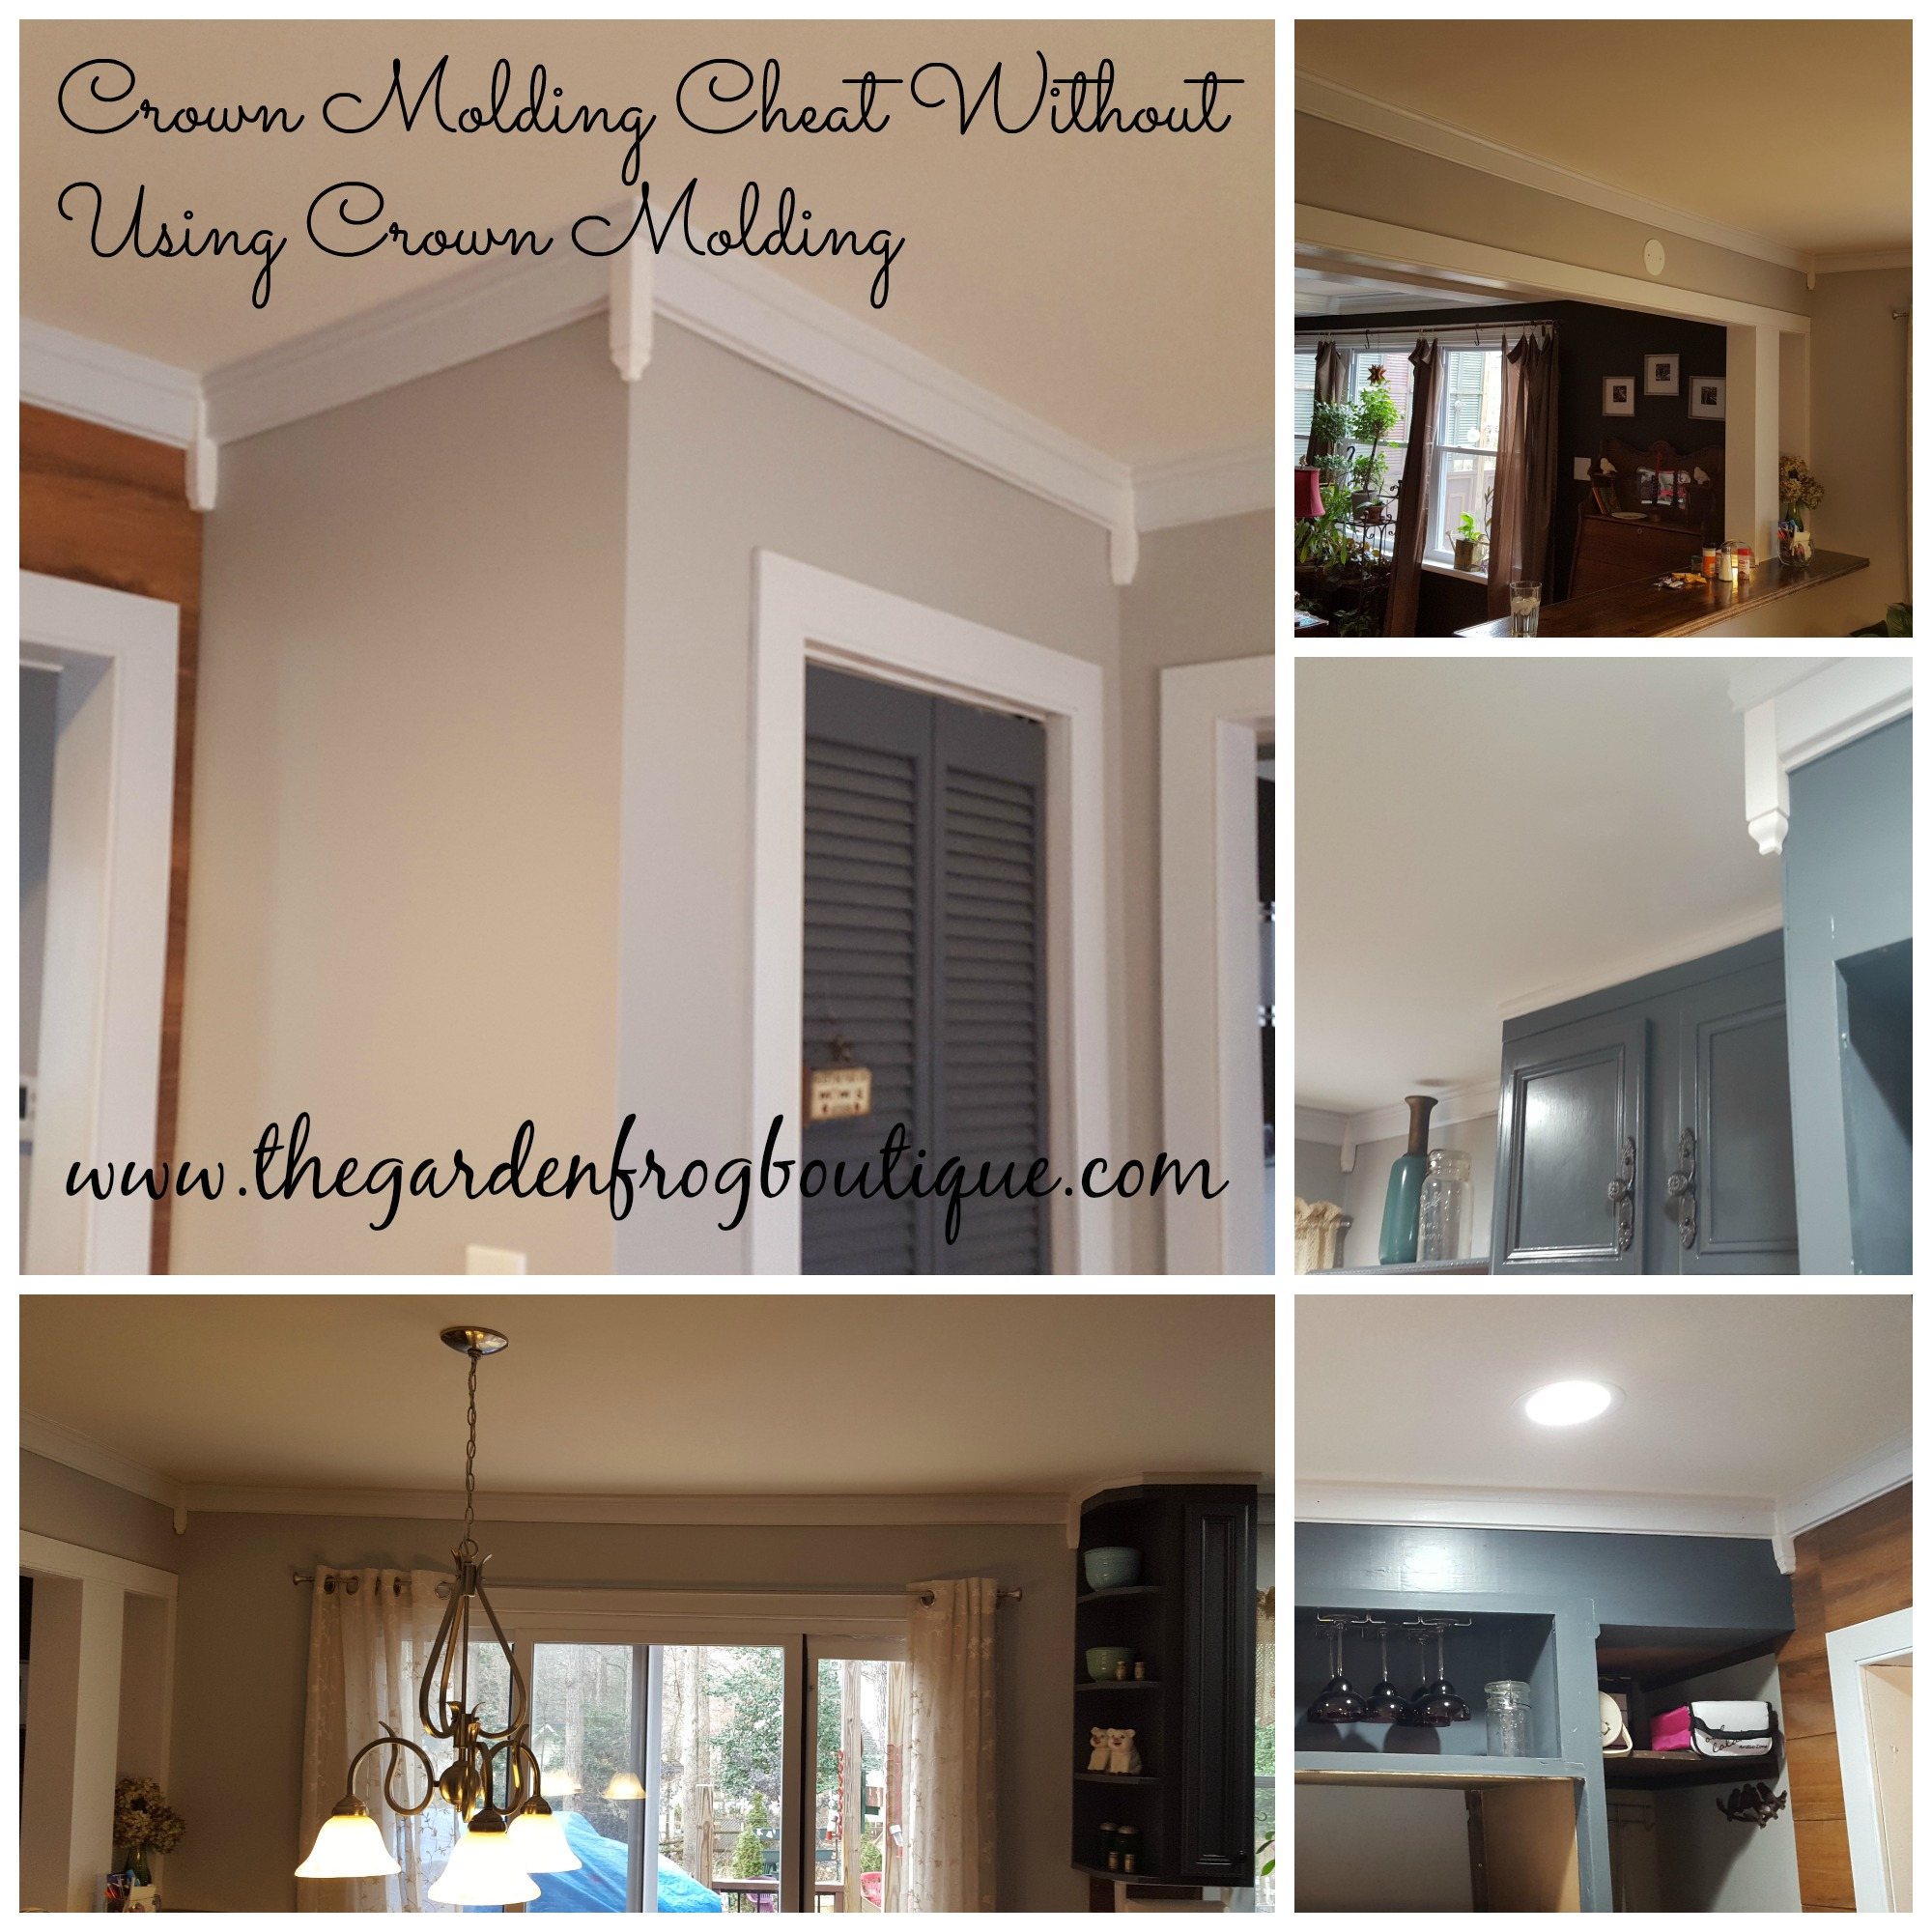 Crown Molding Cheat Without Using Crown Molding - The Garden